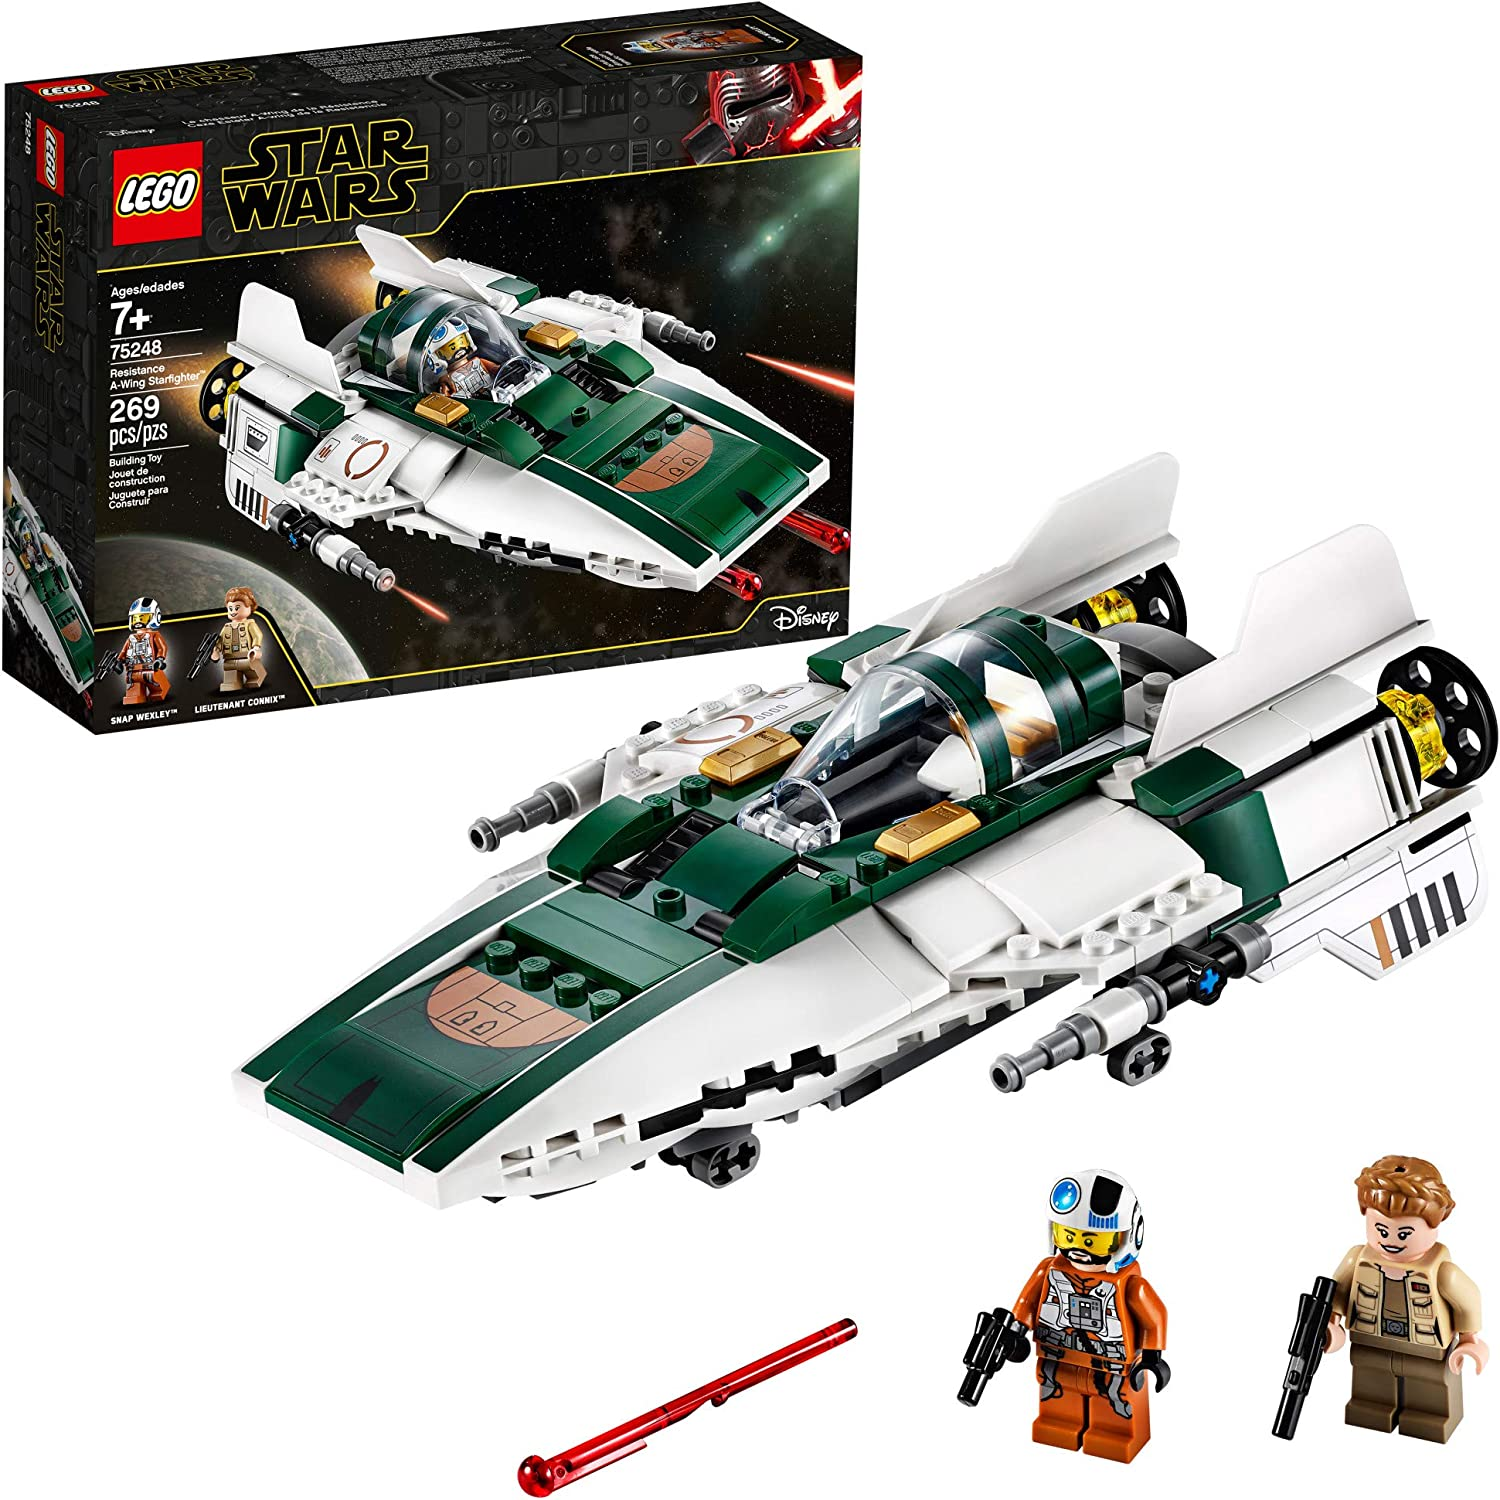 15. LEGO Star Wars: The Rise of Skywalker Resistance A-Wing Starfighter